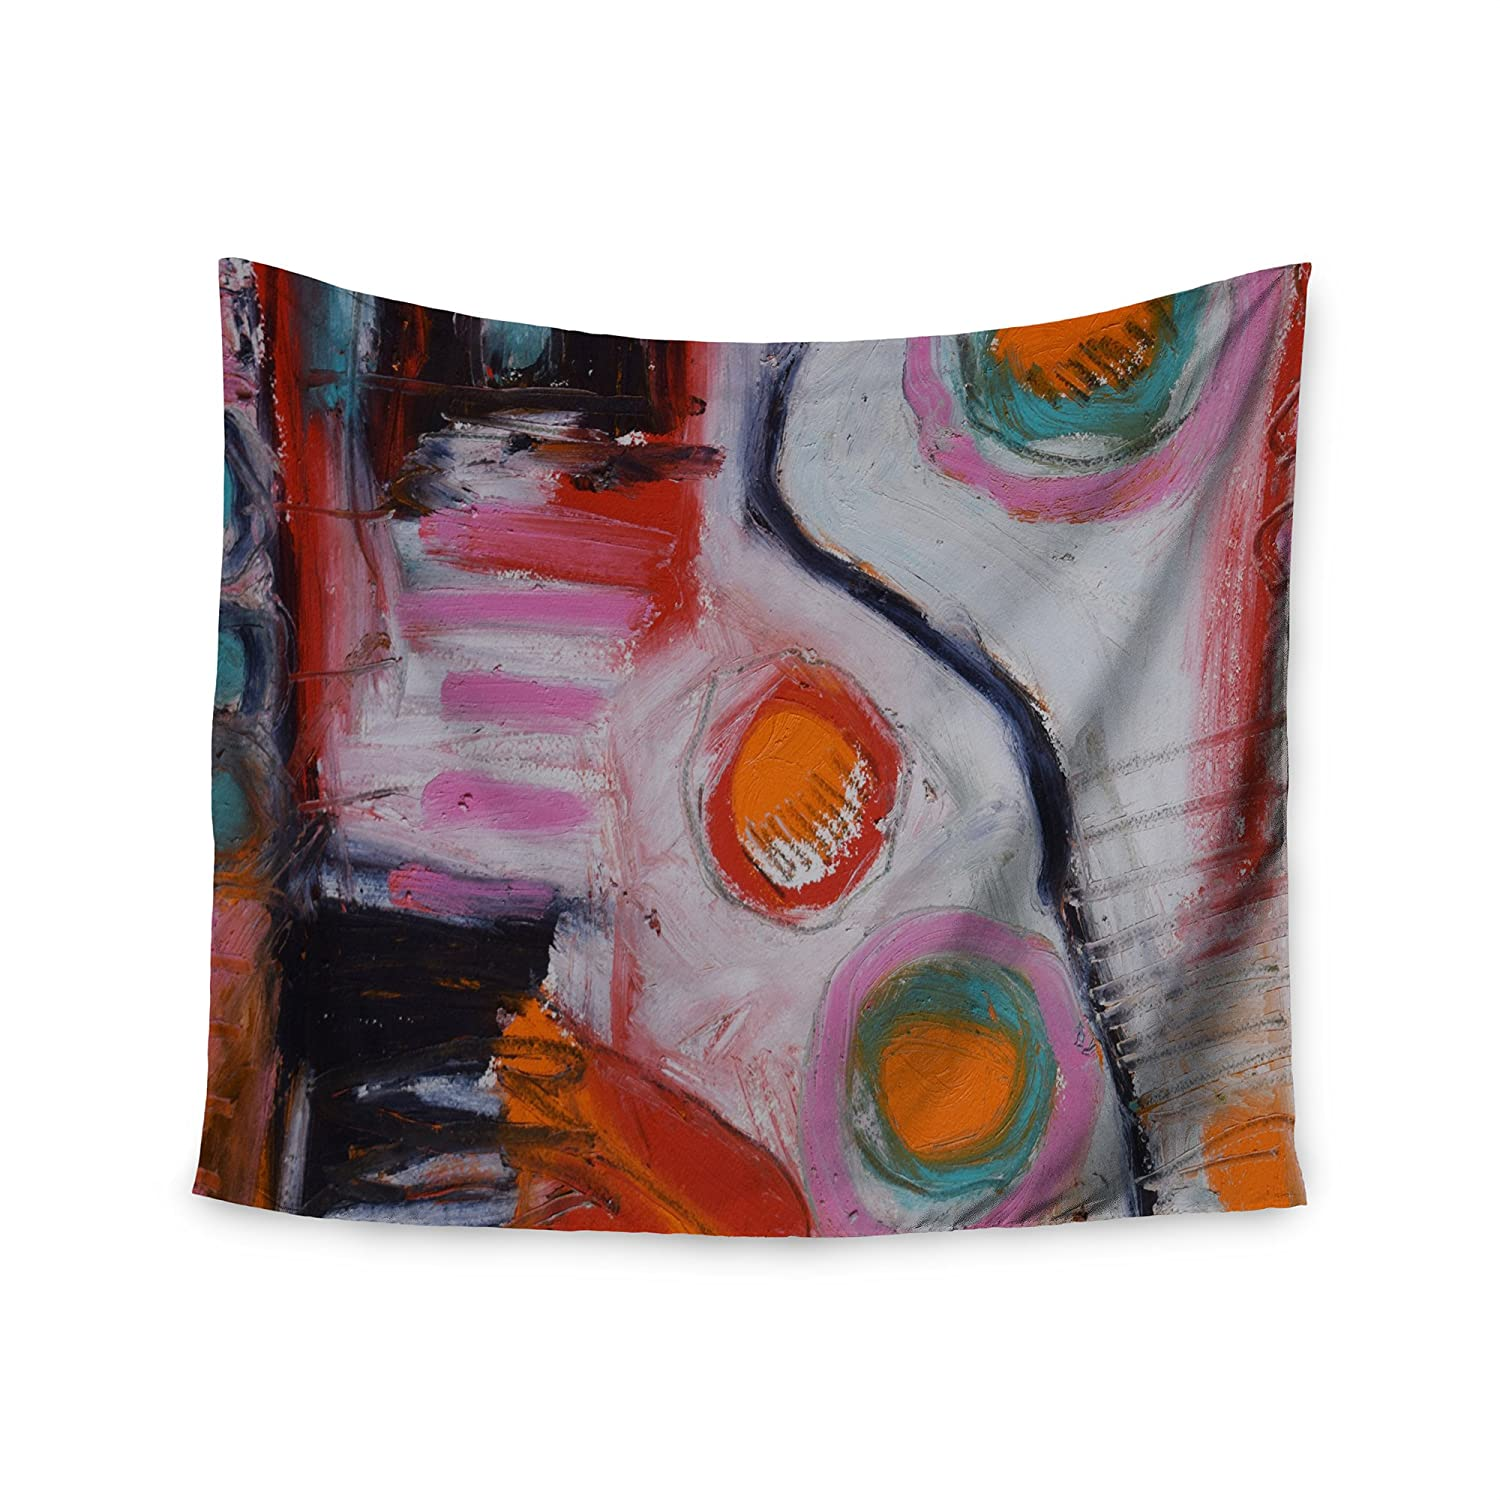 Kess InHouse Jeff Ferst Bold New Day Red Black Painting, 68' x 80' Wall Tapestry 68 x 80 Wall Tapestry JF1028AWT02